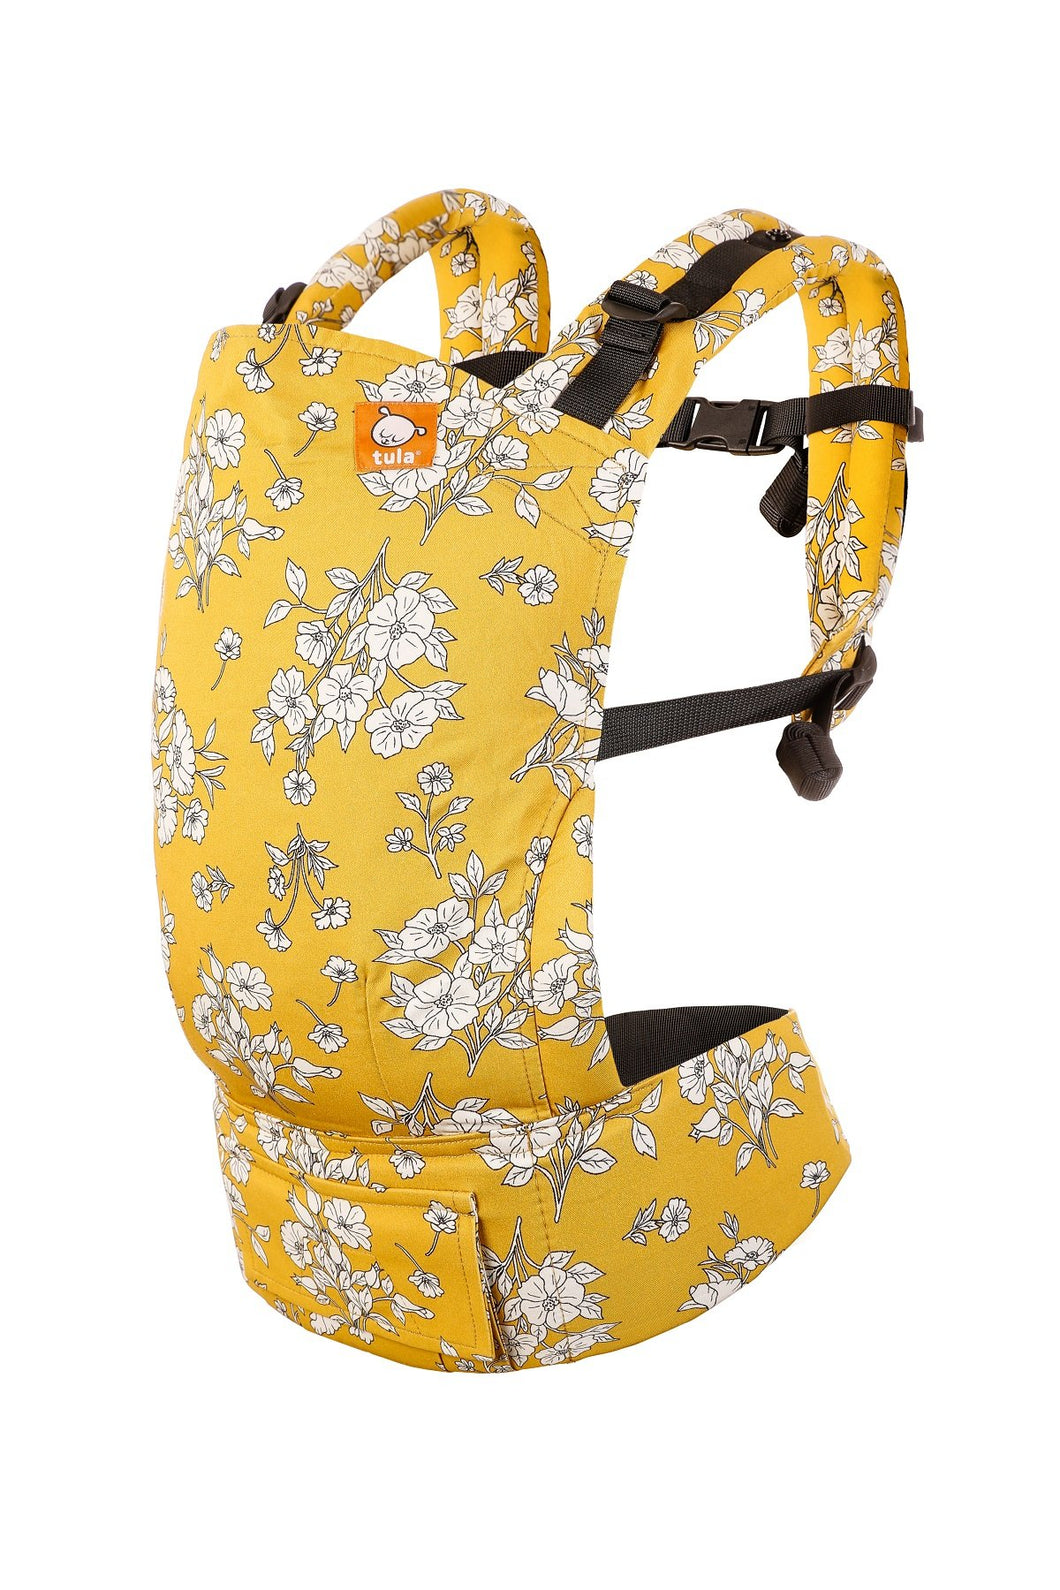 Blanche - Tula Toddler Carrier